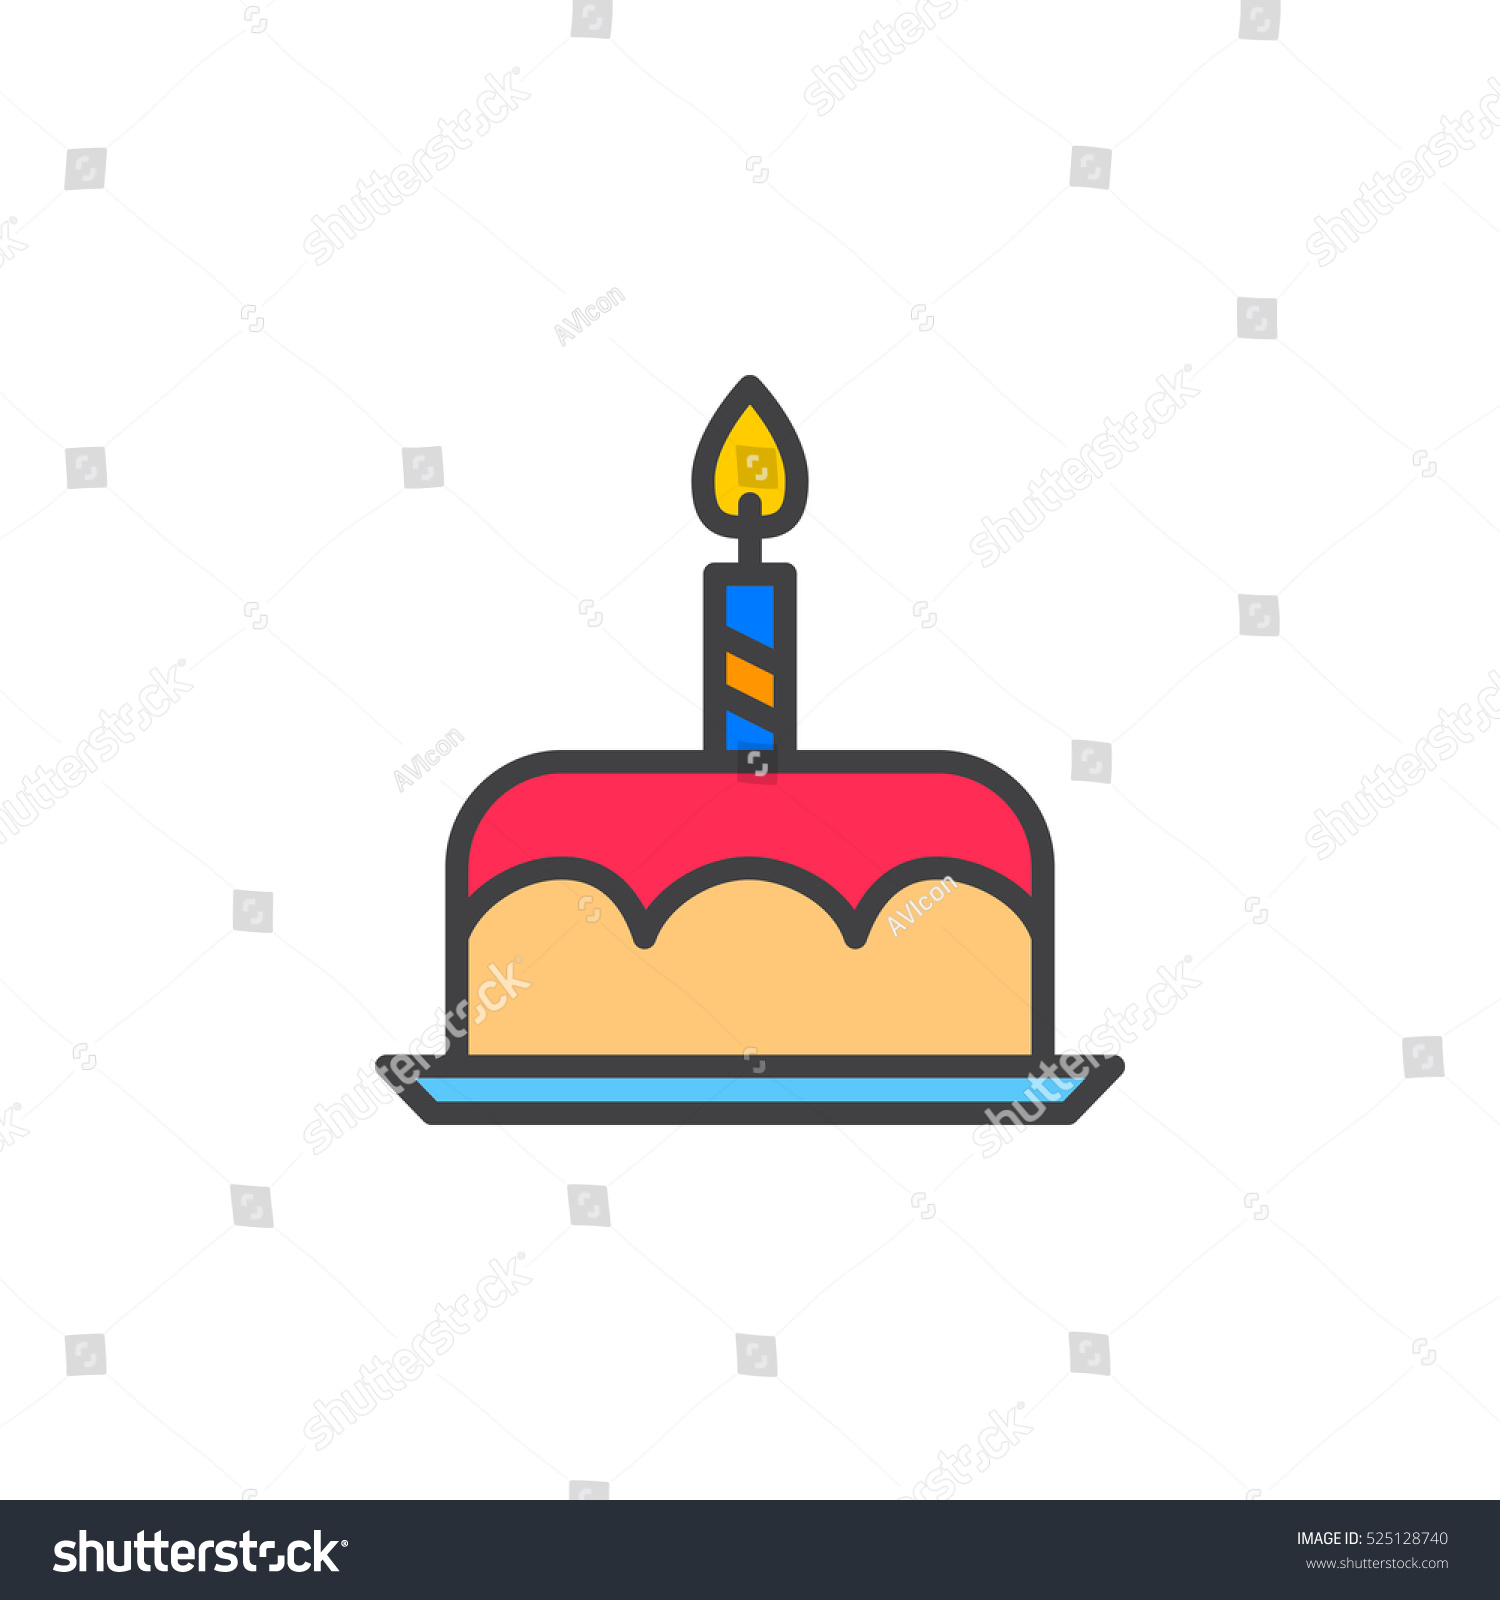 Birthday Cake Line Icon Filled Outline Stock Vector Royalty Free